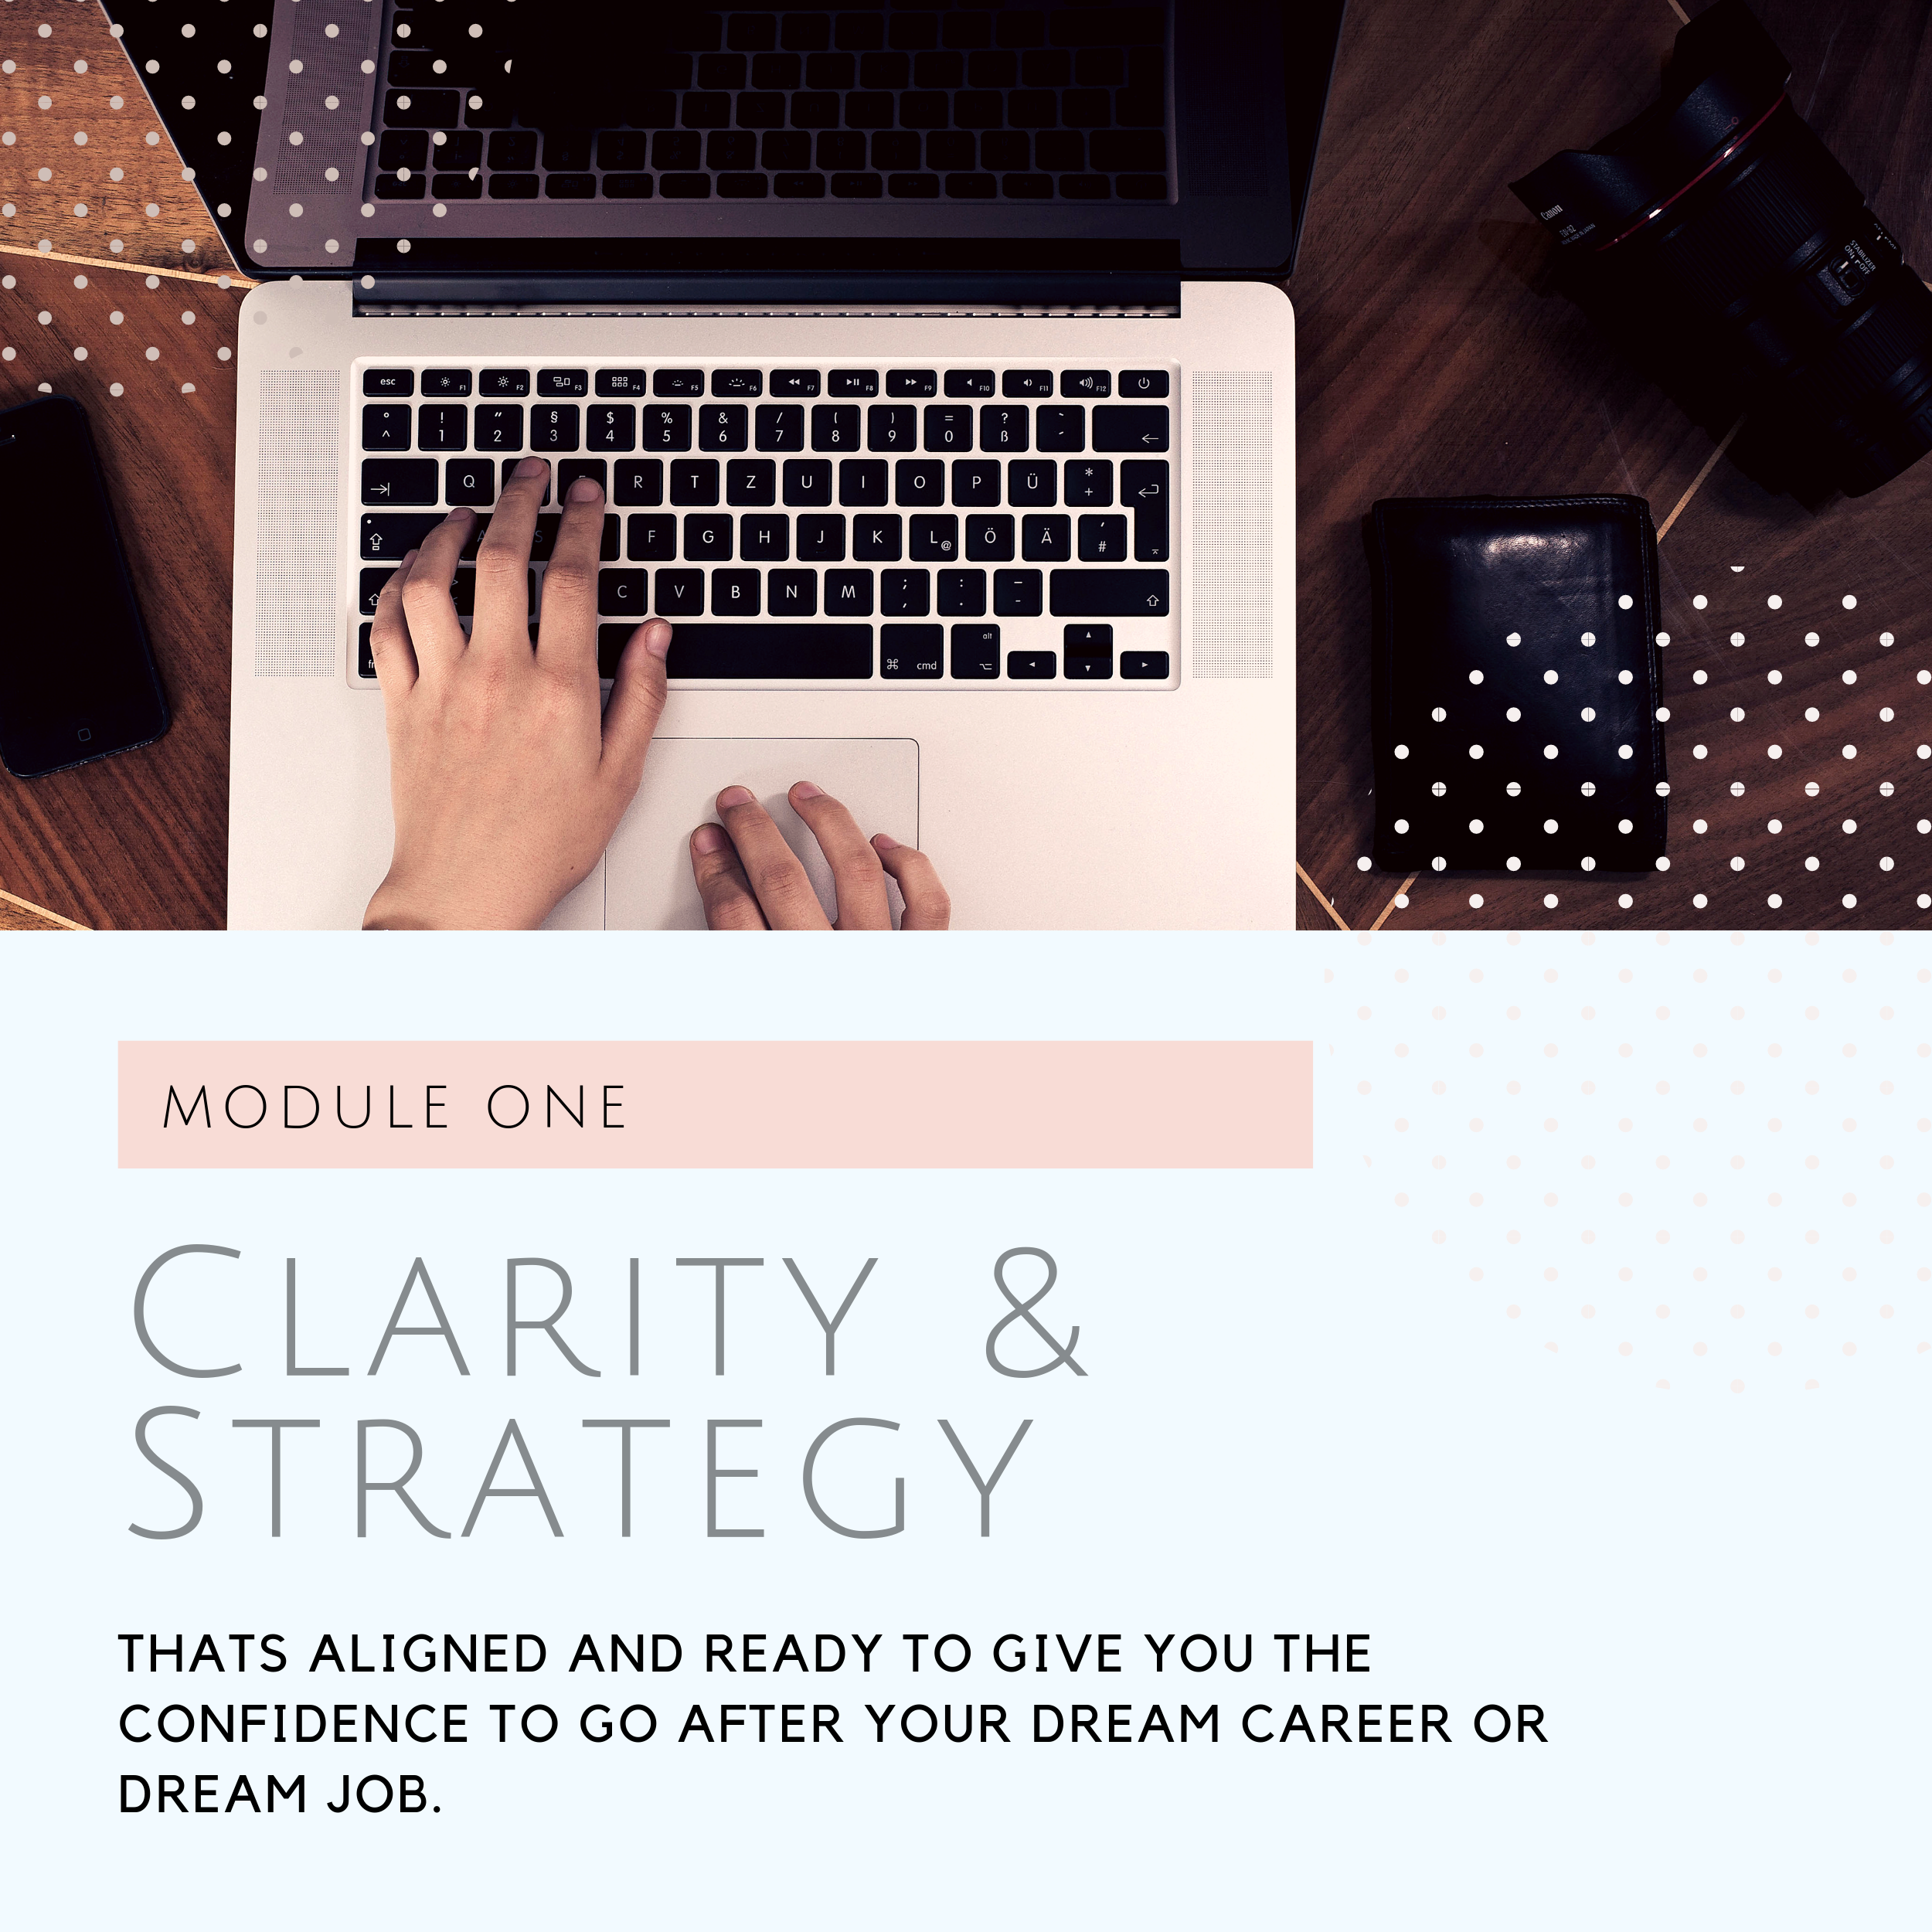 What you'll Learn in Module One - Week one you will learn how to create clarity for yourself, Your personal starting point is our baseline to build a new and improved foundation for you to work from going forward.Week two is all about strategy! We take a look at your strengths, weaknesses, motivators, and your values and begin to lay the bricks for a strong career strategy that will propel you forward on your pathLIVE TRAINING INCLUDE:✓Live virtual training via Zoom to get you started on your career design framework.✓Learning how to clarify your vision and making a rough draft of your career strategy.✓ Q&A After all training sessions.